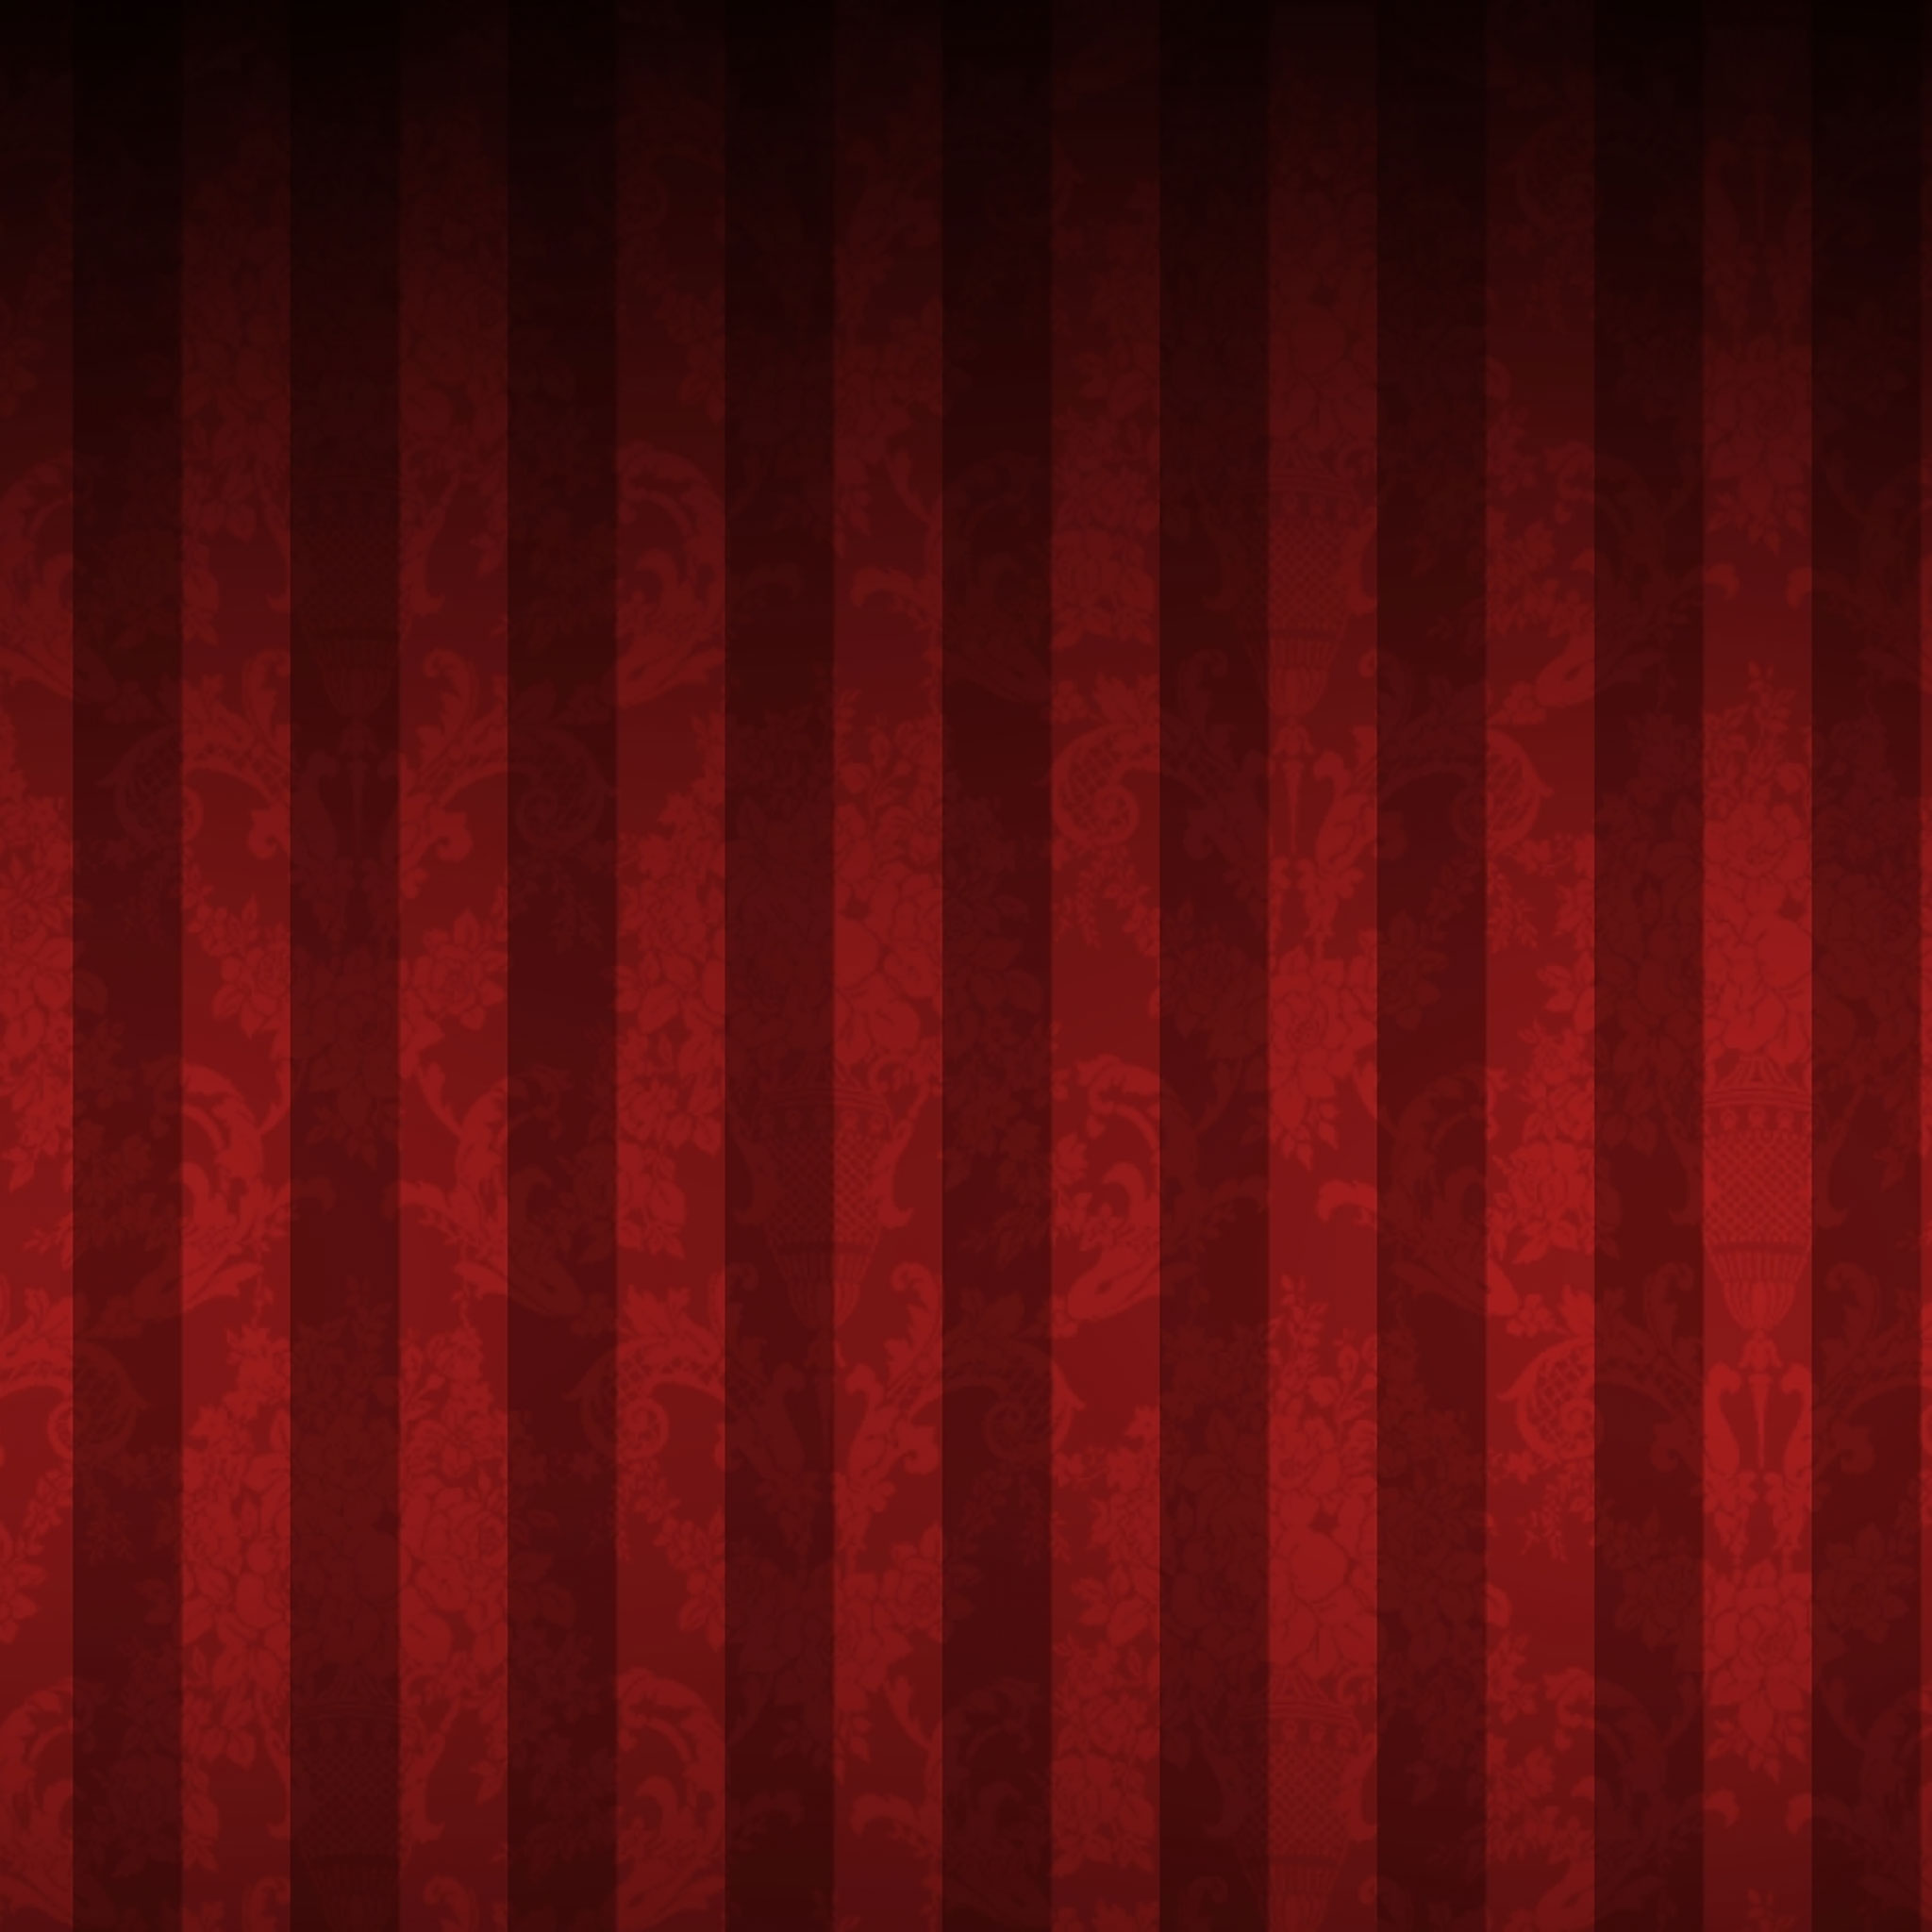 Red velvet curtain wallpaper - Red Ipad Wallpaper 4